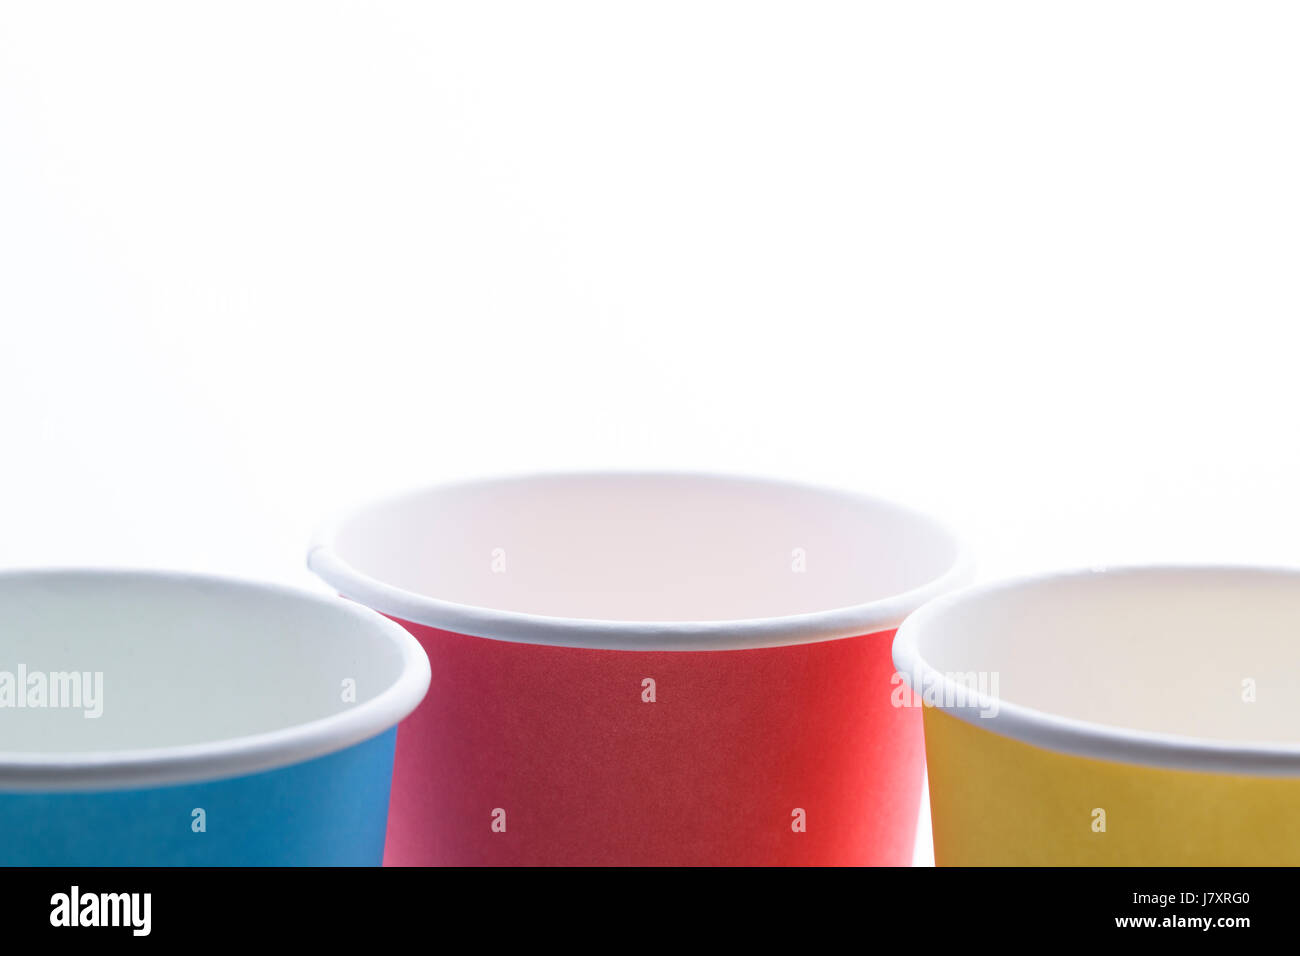 Yellow, blue and orange disposable cups isolated on white background. Stock Photo